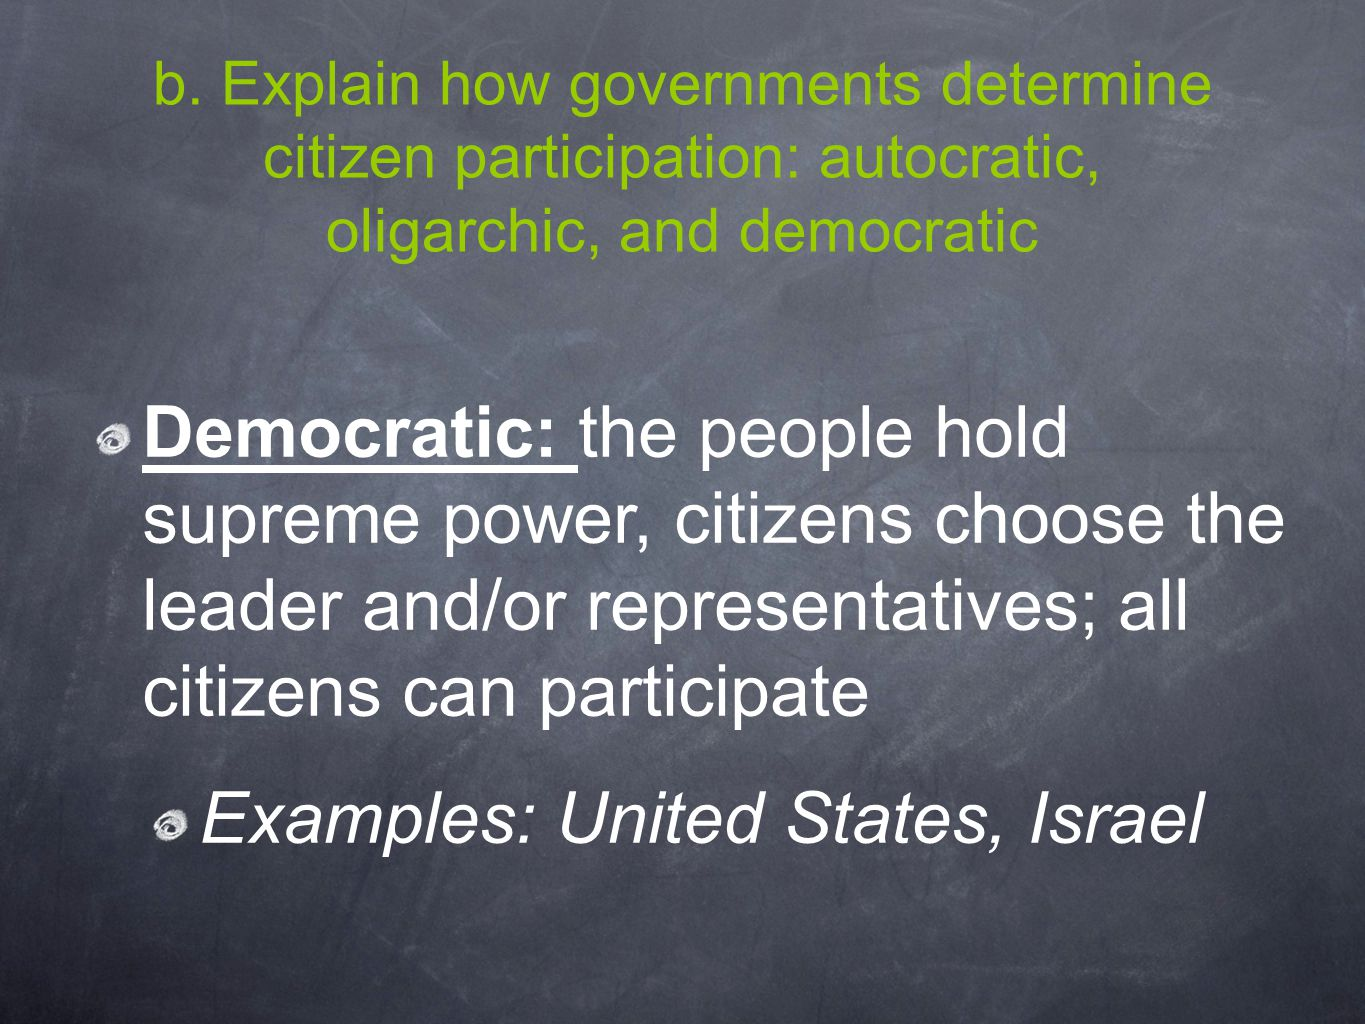 Examples: United States, Israel